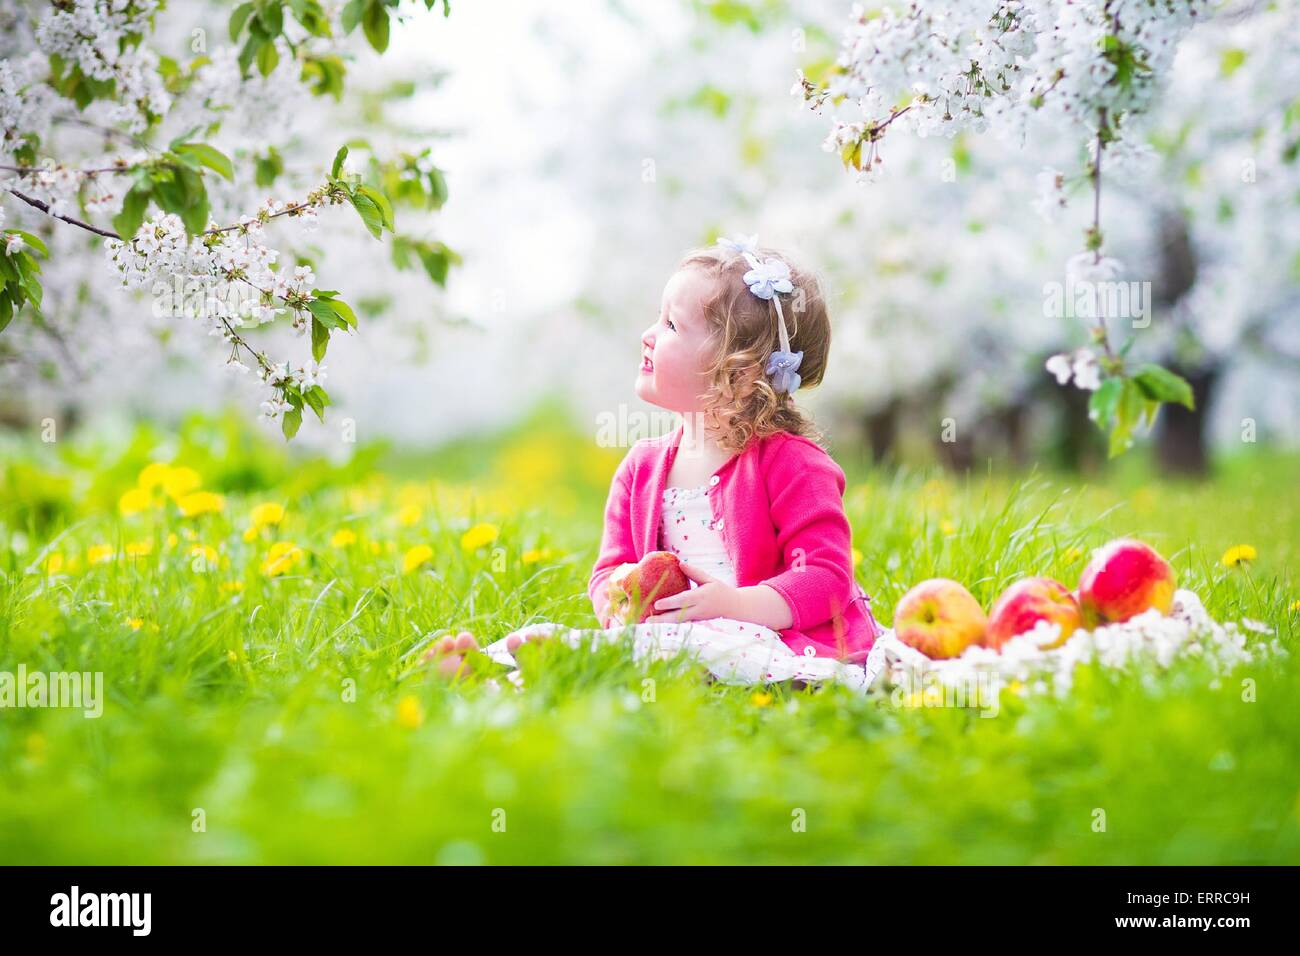 Adorable happy toddler girl with curly hair and flower crown wearing a red dress enjoying picnic in a blooming fruit - Stock Image